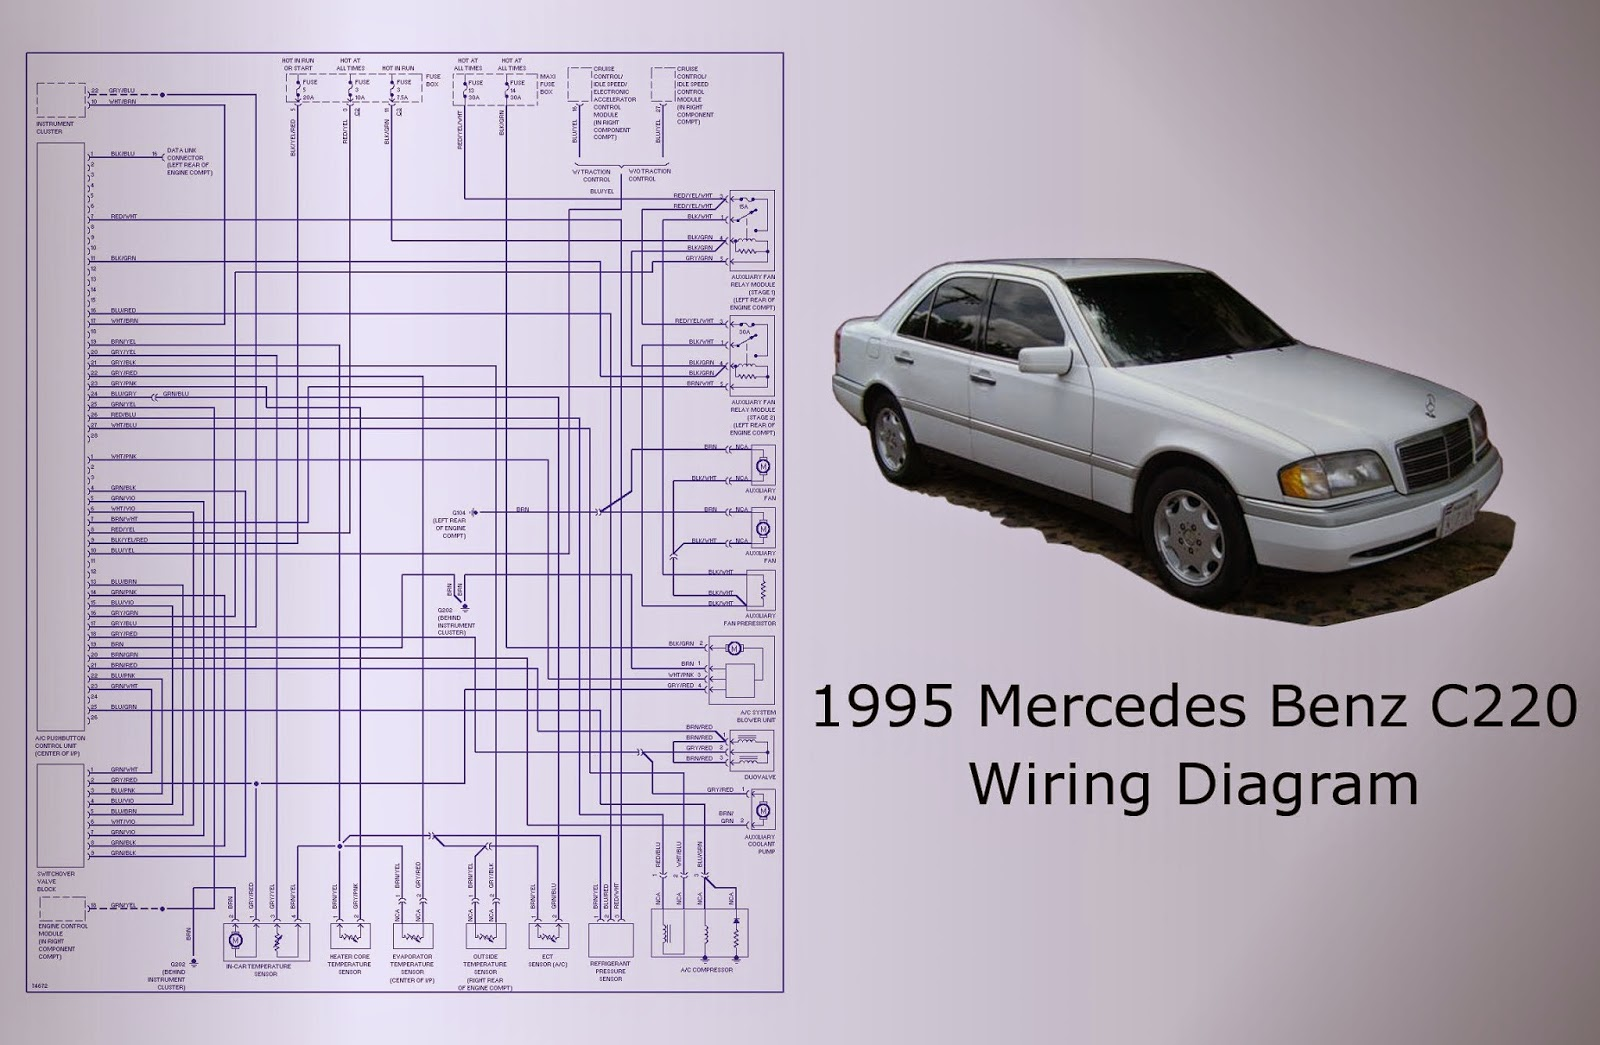 1995 Mercedes Benz C220 Wiring Diagram